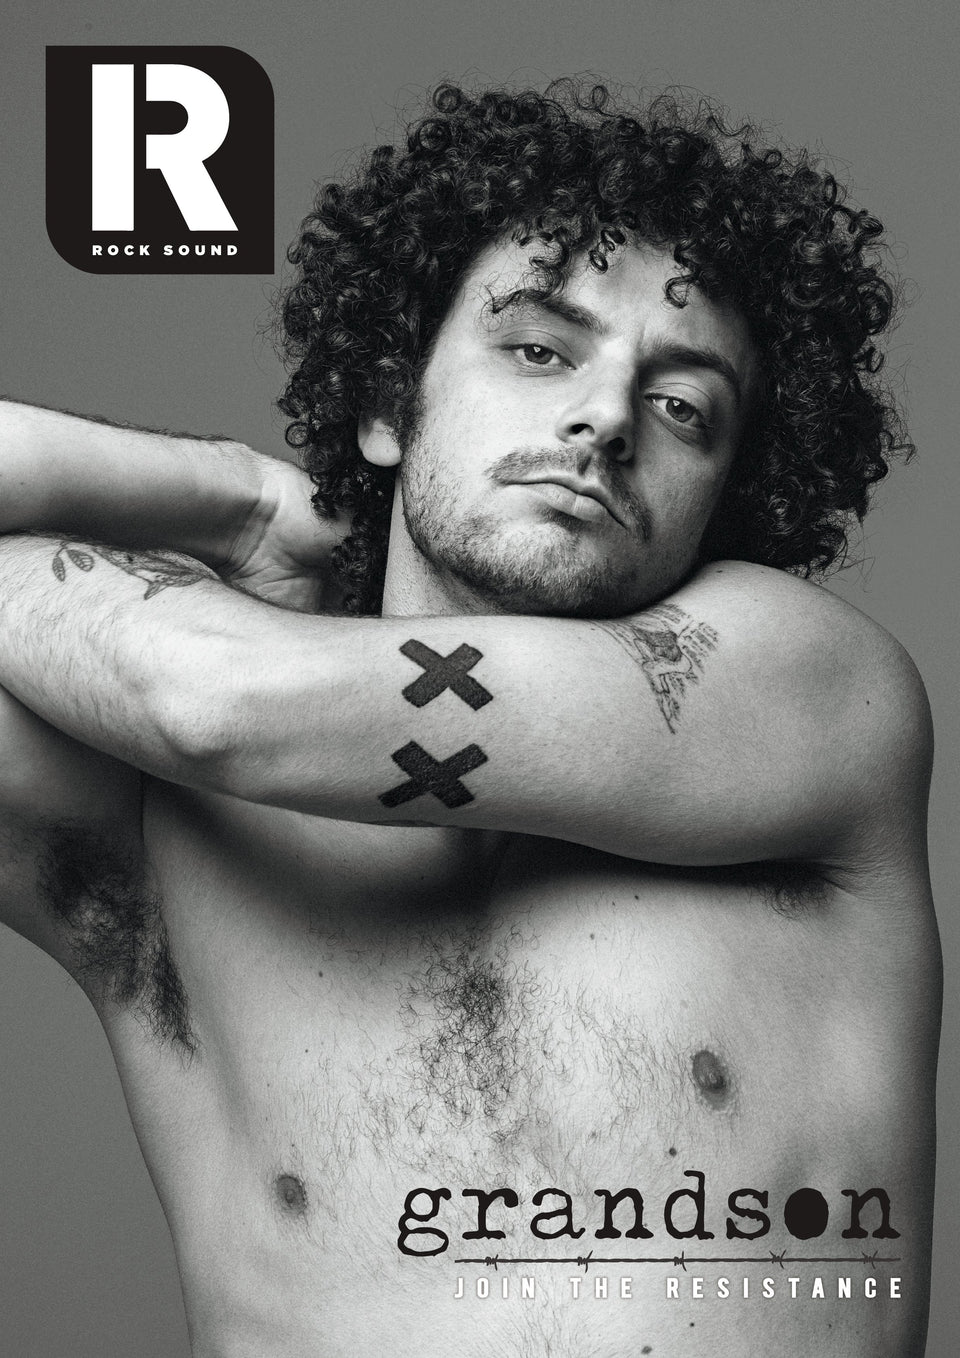 Meet rock's new leader of the resistance - Grandson. This is the first, world exclusive story of one of the most curious and fascinating characters in modern music. Accompanied by a stunning, brand new and exclusive photo shoot, this is the definitive, detailed and intimate portrait of Jordan Benjamin.